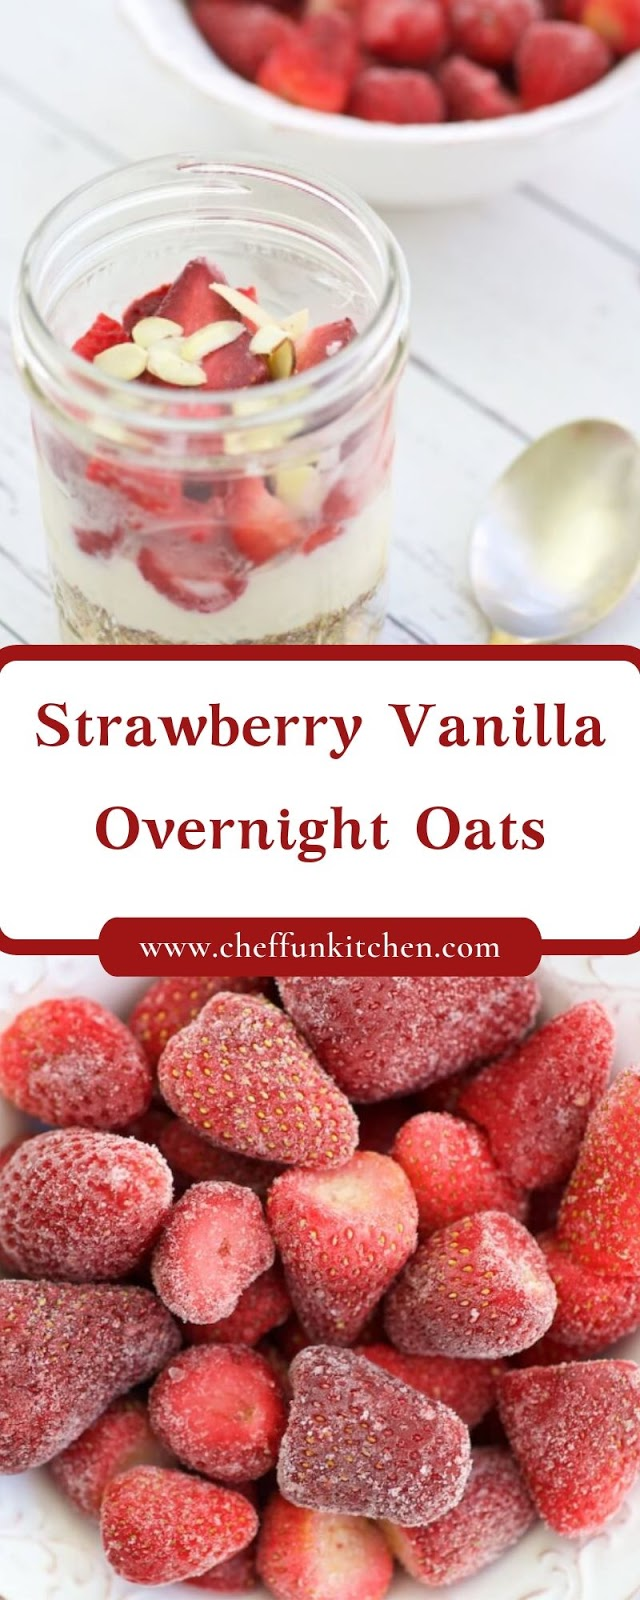 Strawberry Vanilla Overnight Oats